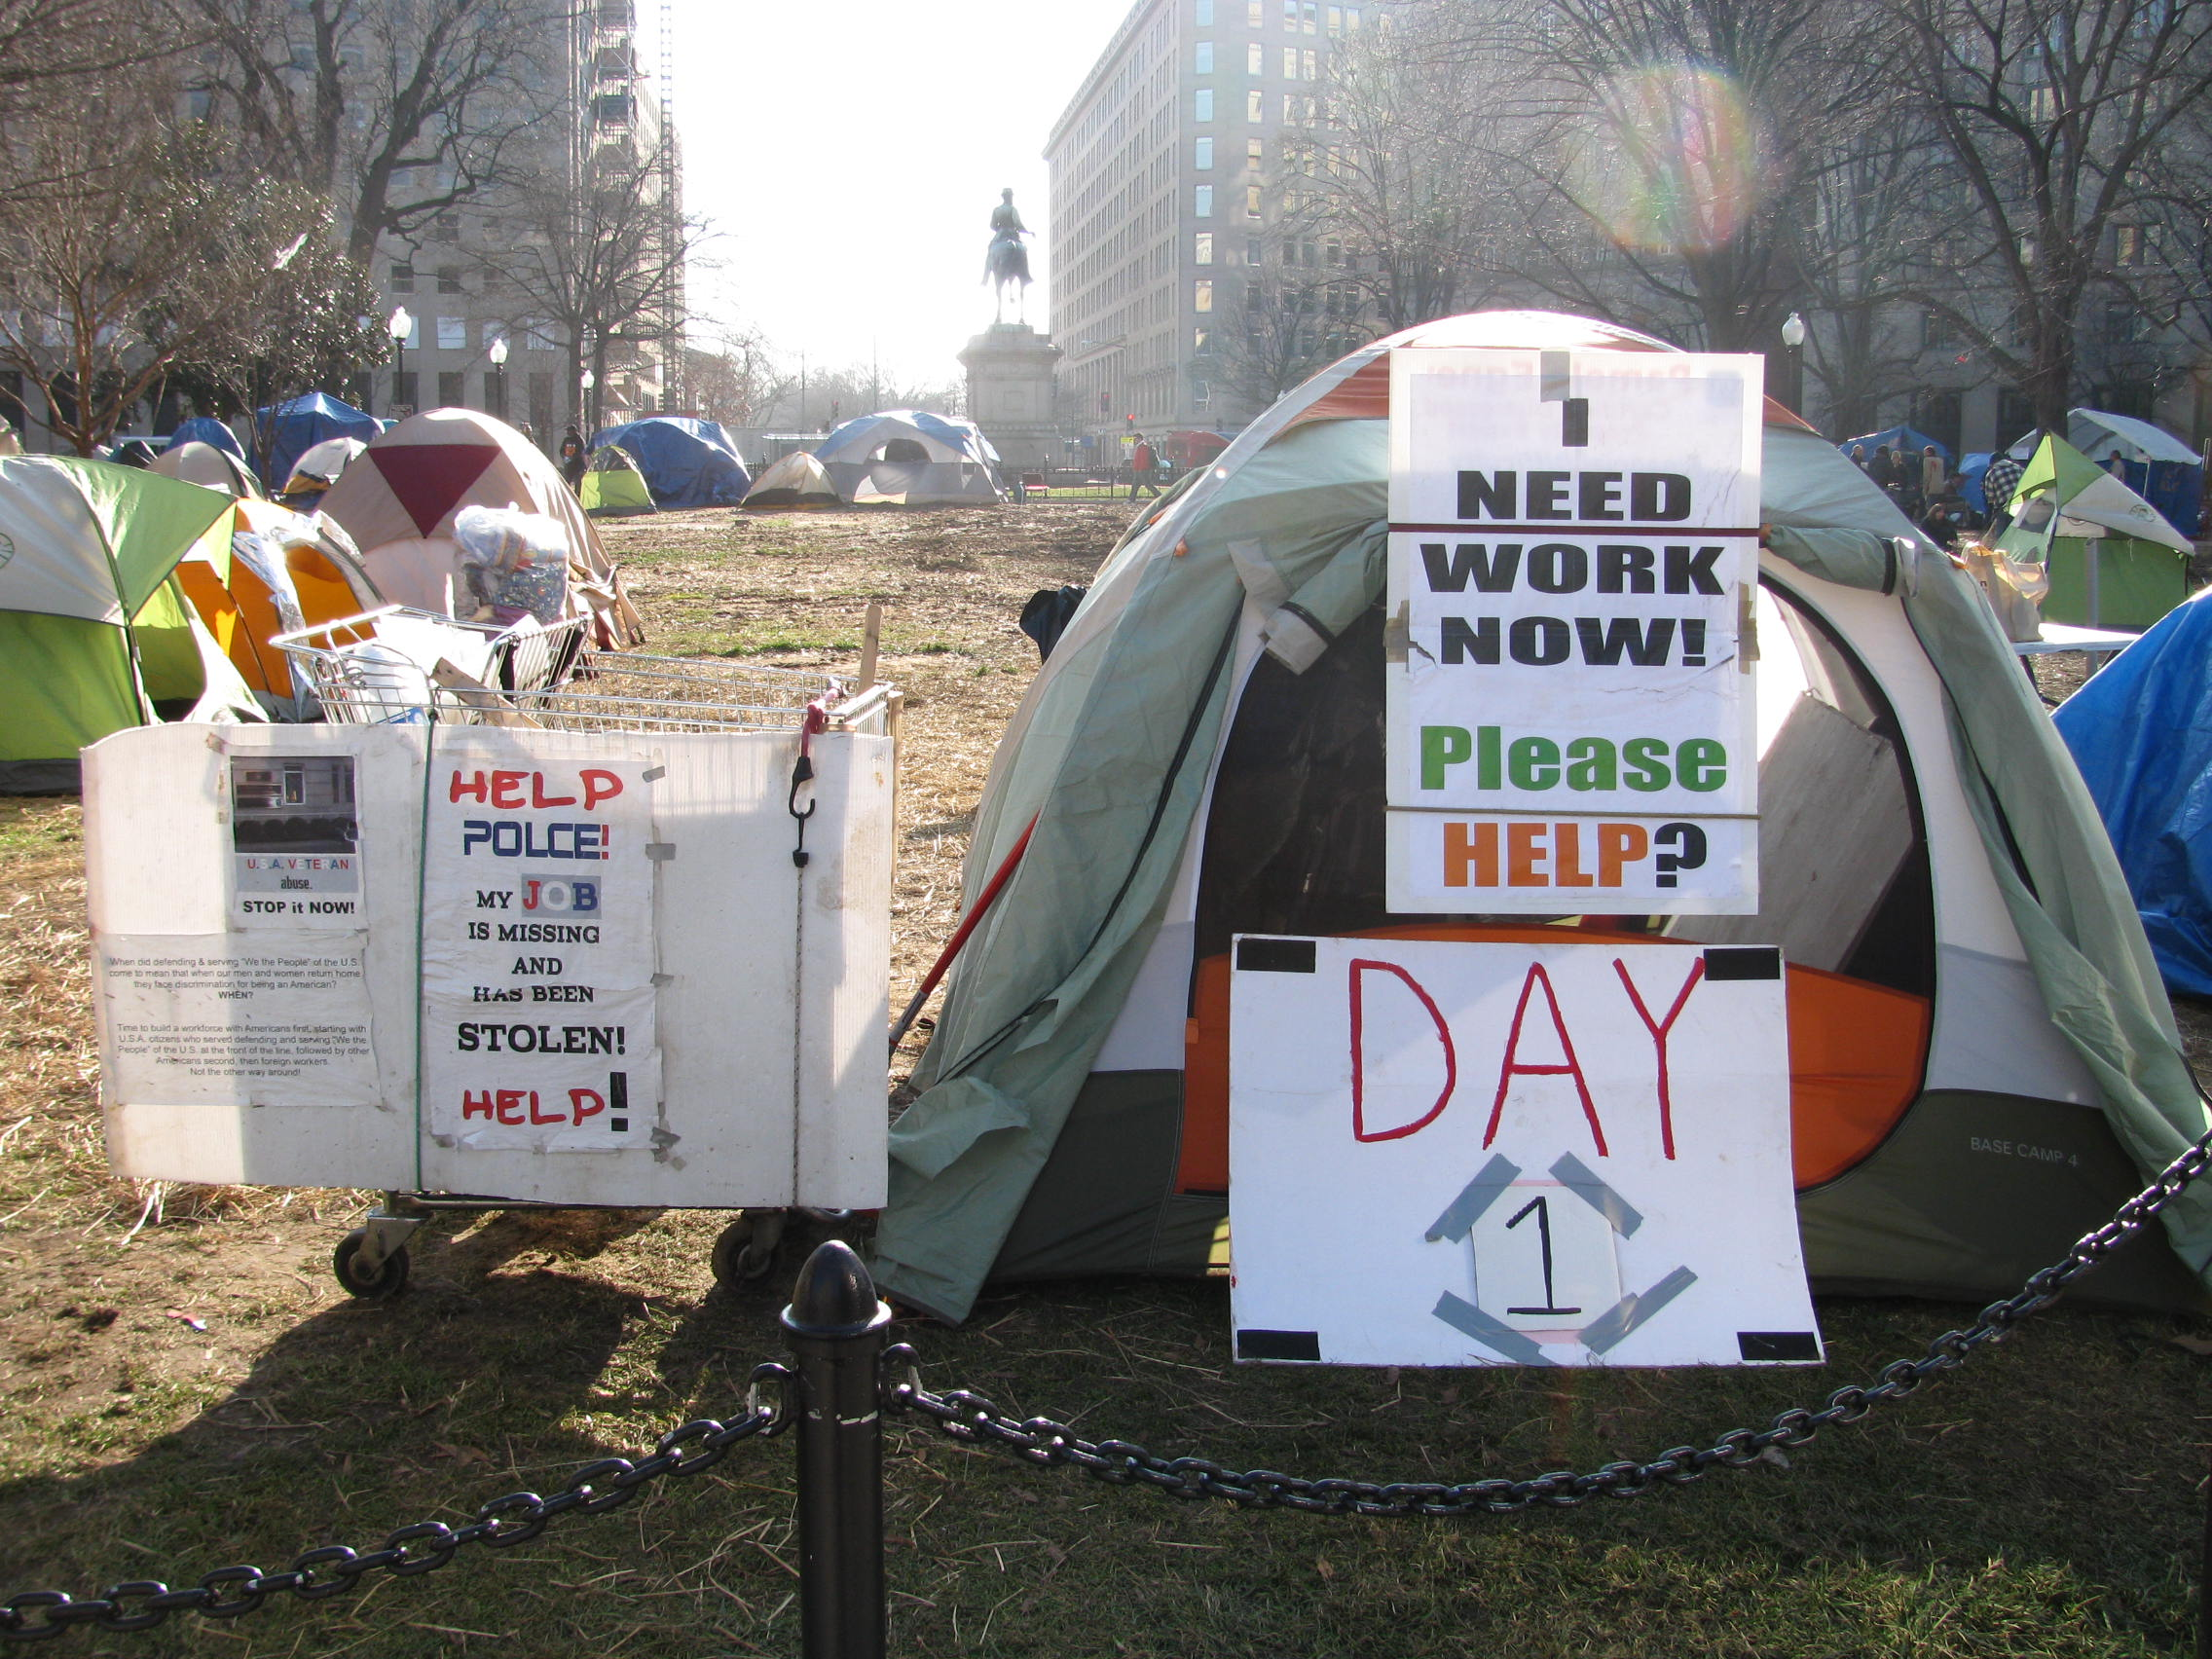 file occupy need work now jpg file occupy need work now jpg